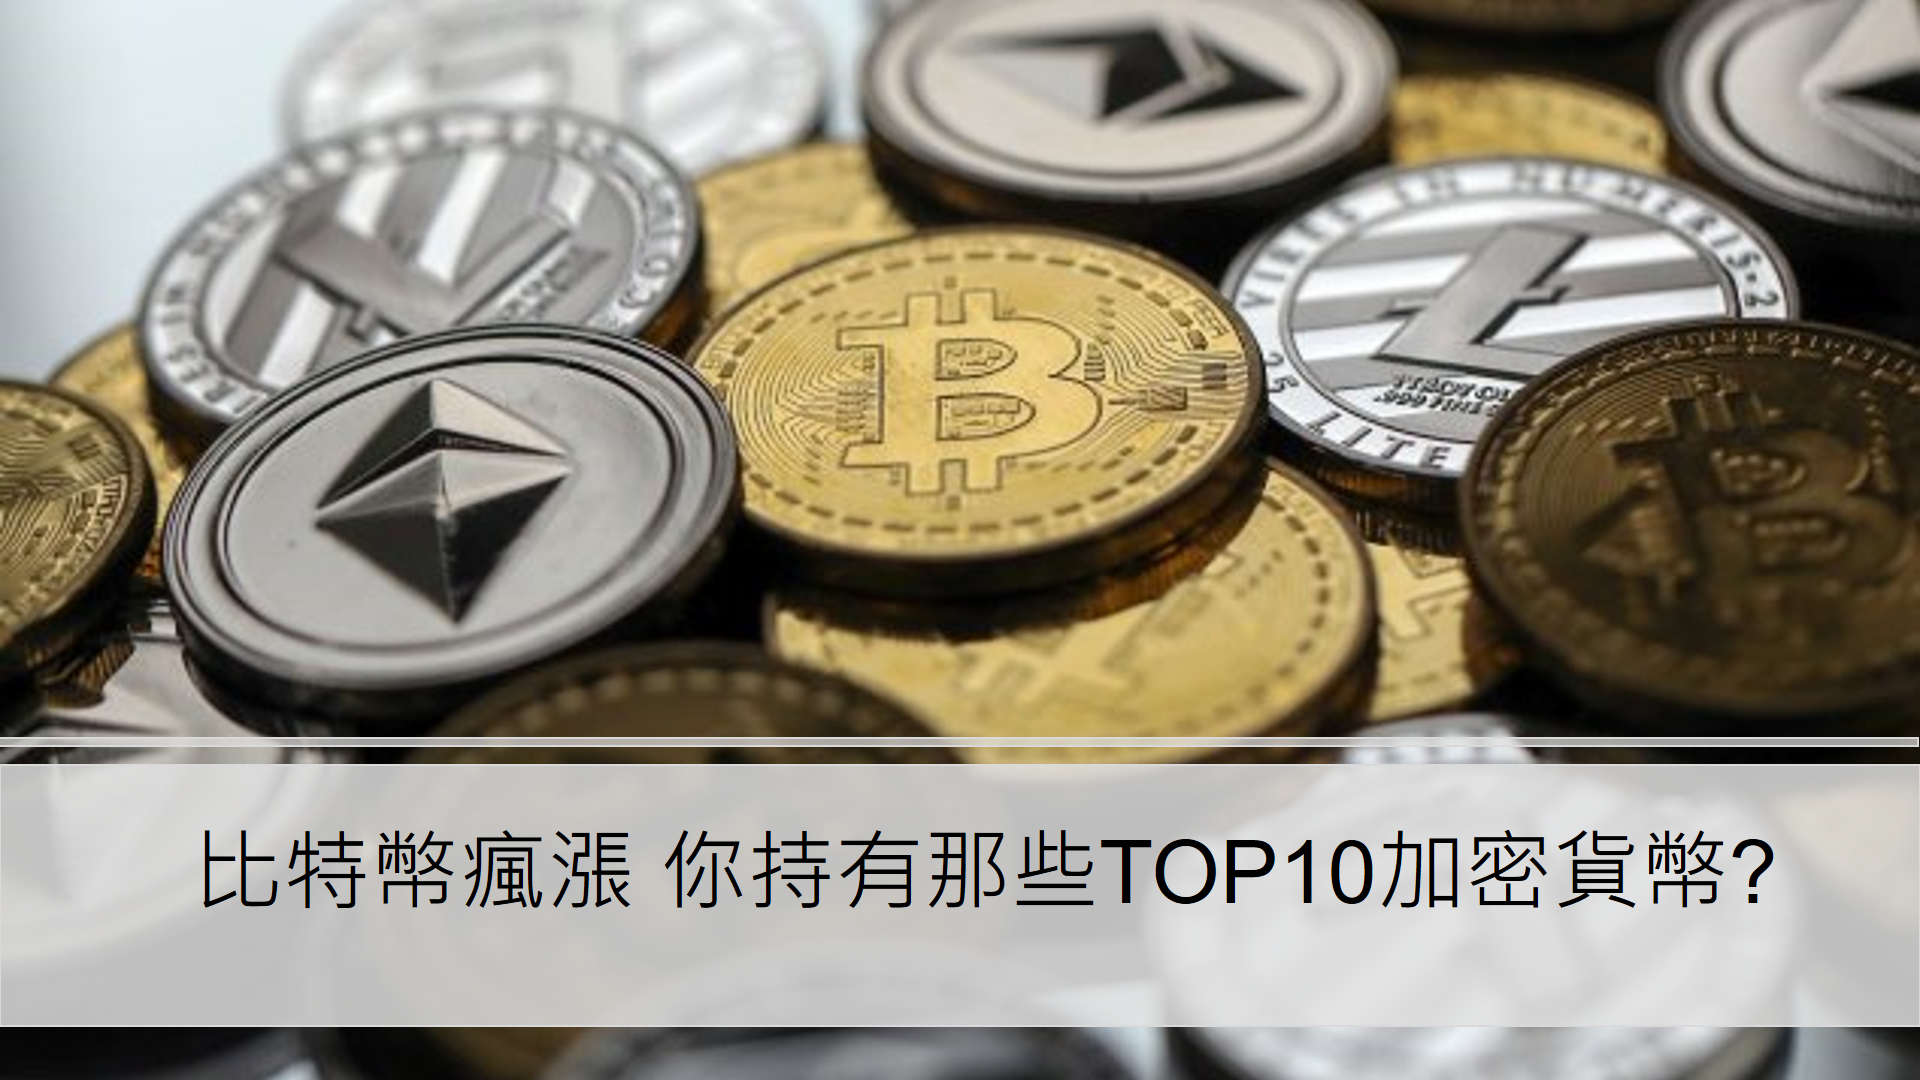 Top 10 Cryptocurrency Introduce